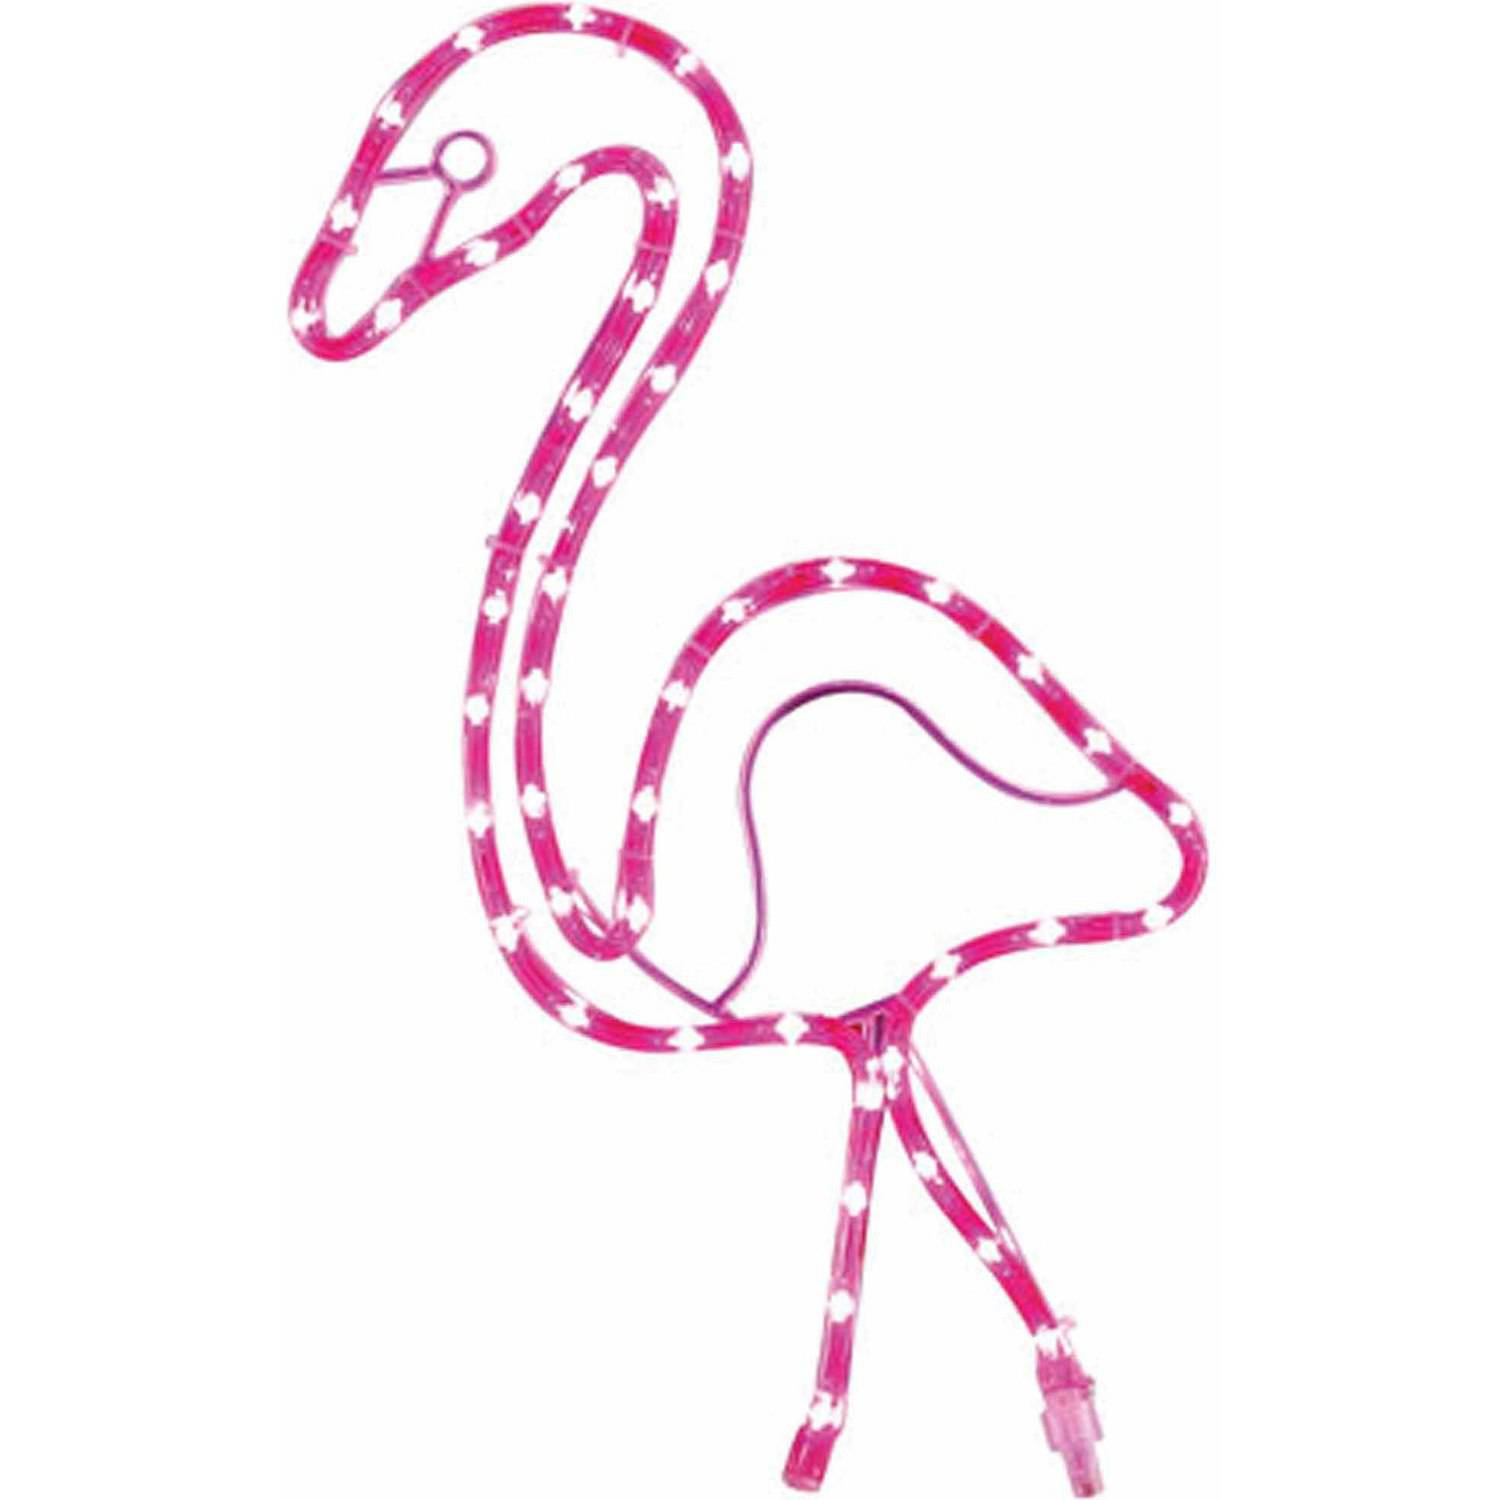 Stylish Camping 8080106 Flamingo Decorative Rope Light